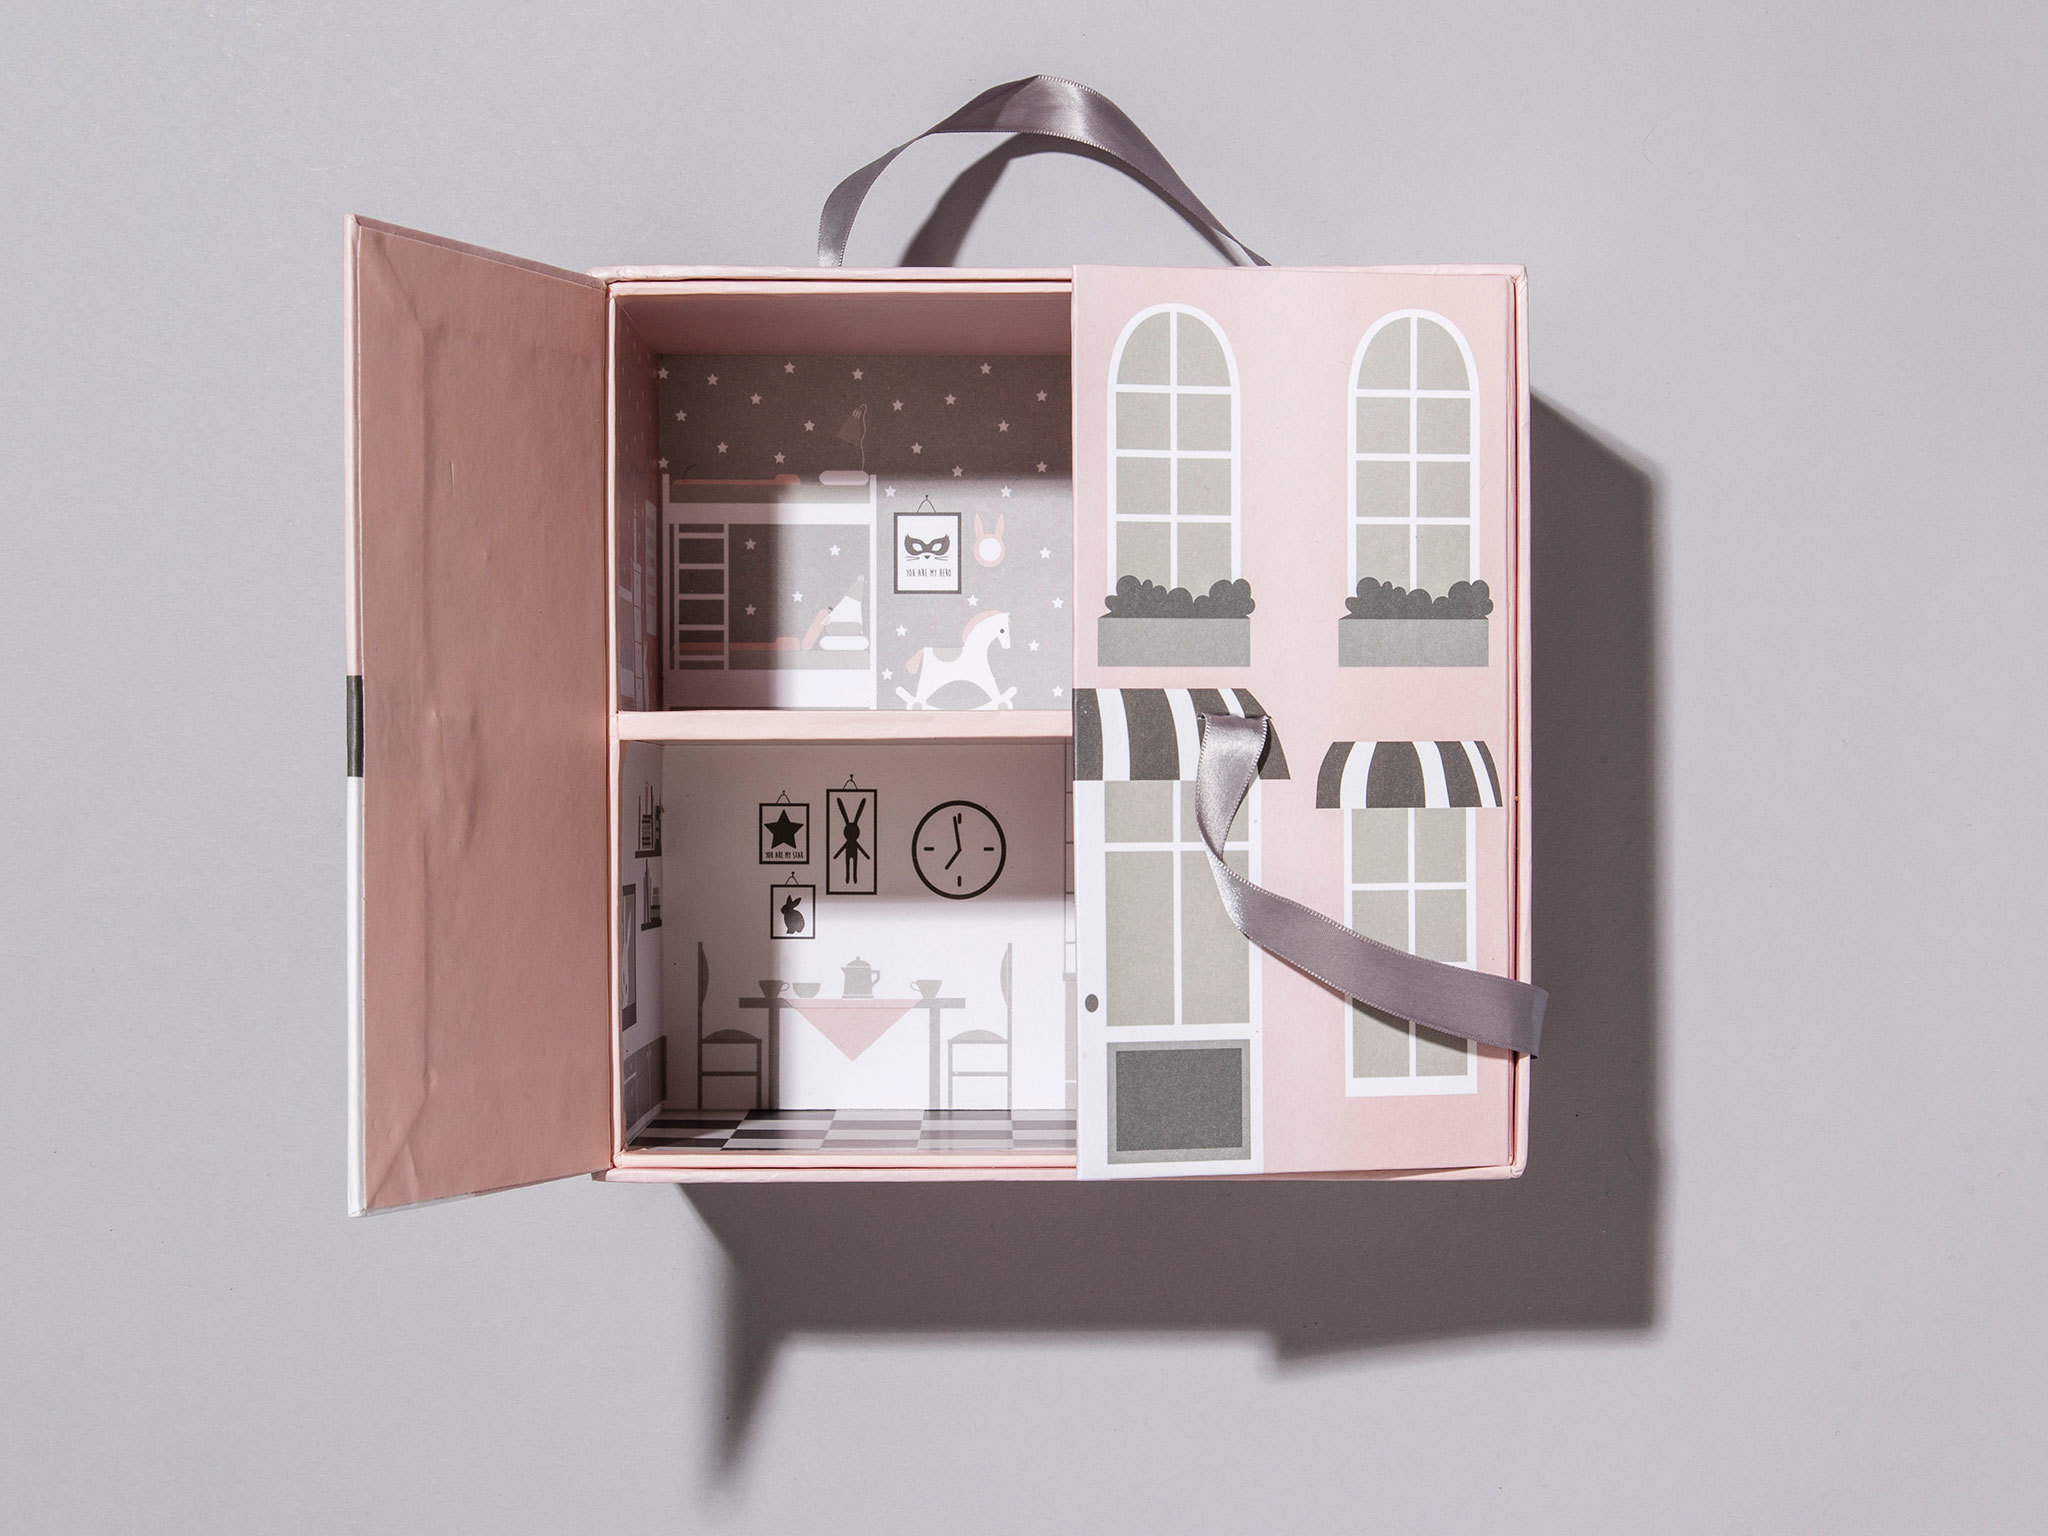 Cardboard doll's house by H&M